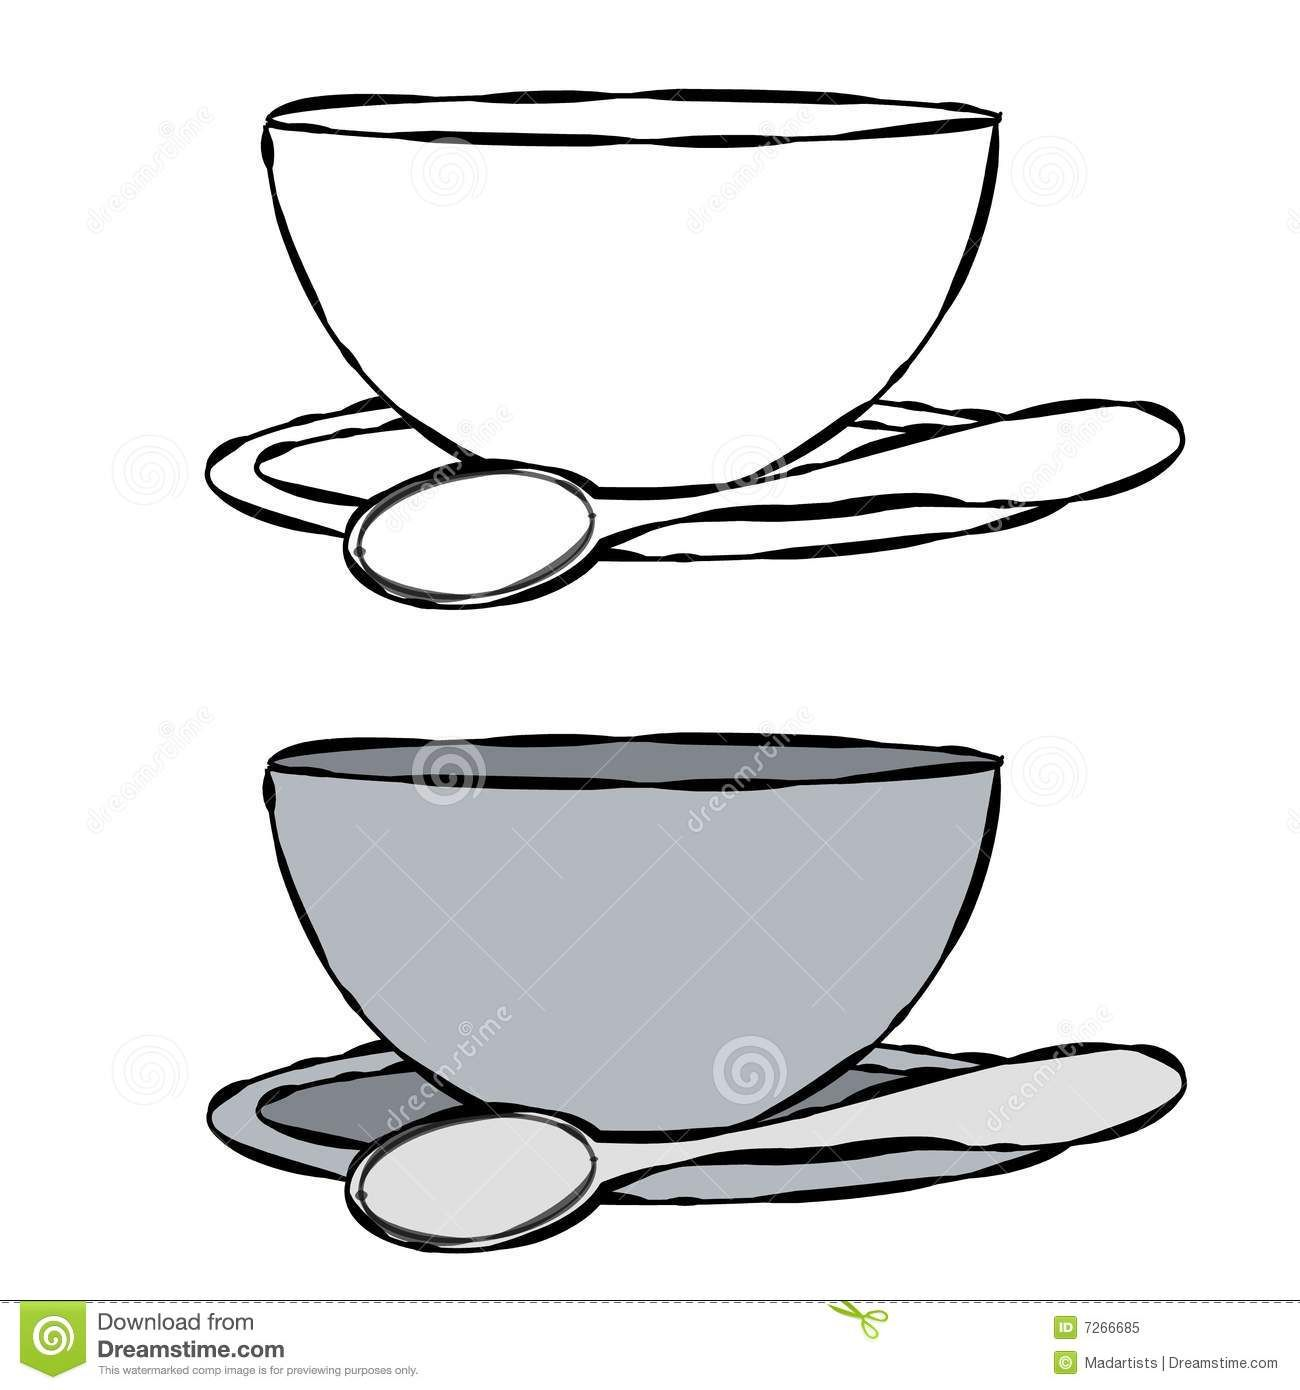 Bowl with spoon clipart clipart black and white Spoon clipart black and white ...   ART   Clipart black, white, Clip ... clipart black and white